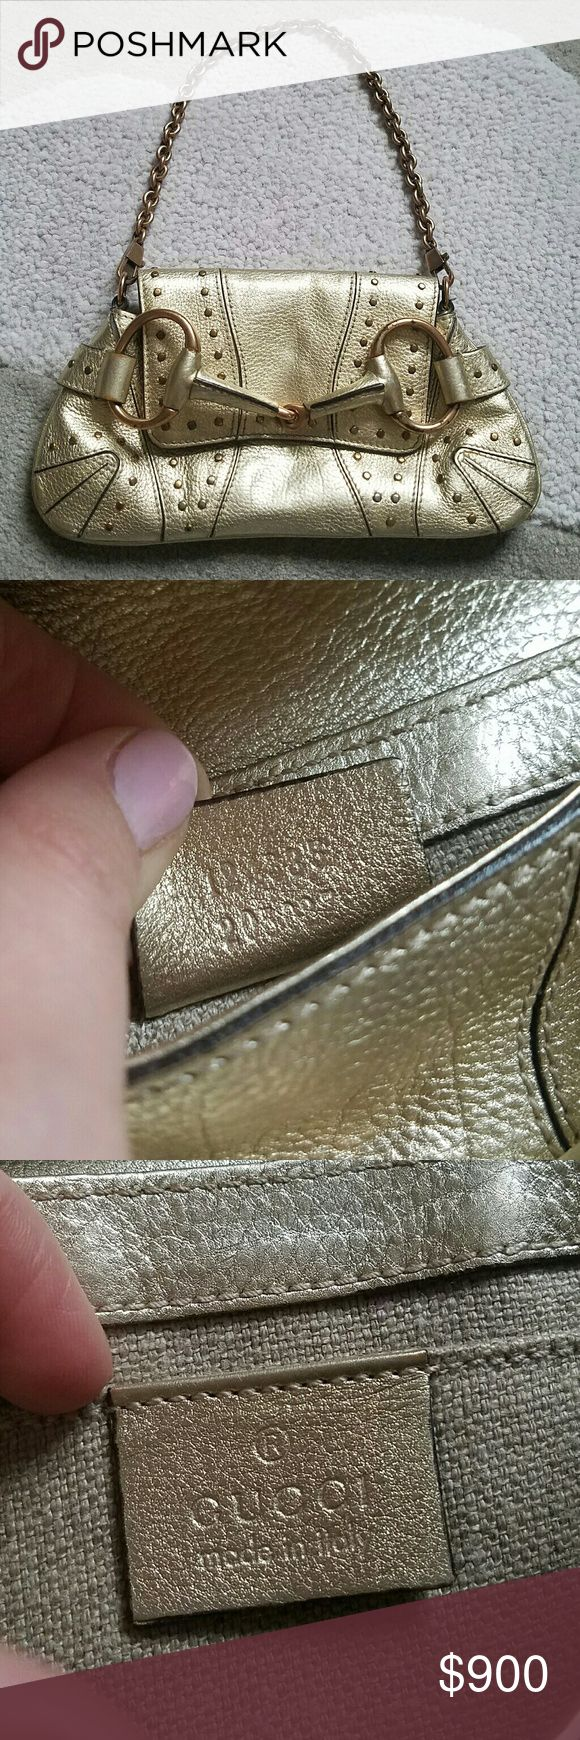 "GUCCI calfskin studded horsebit gold clutch bag Gorgeous gold GUCCI clutch with removable chain. Studded, but some of studs have become slightly discolored (barely noticeable). Shows signs of wear, all noted in pictures - see additional listing for more pictures of damage. Inside in excellent condition. No holes or tears. No box or dustbag.  8.5""x4.5"" Chain 7"" from top to bag Gucci Bags Clutches & Wristlets"